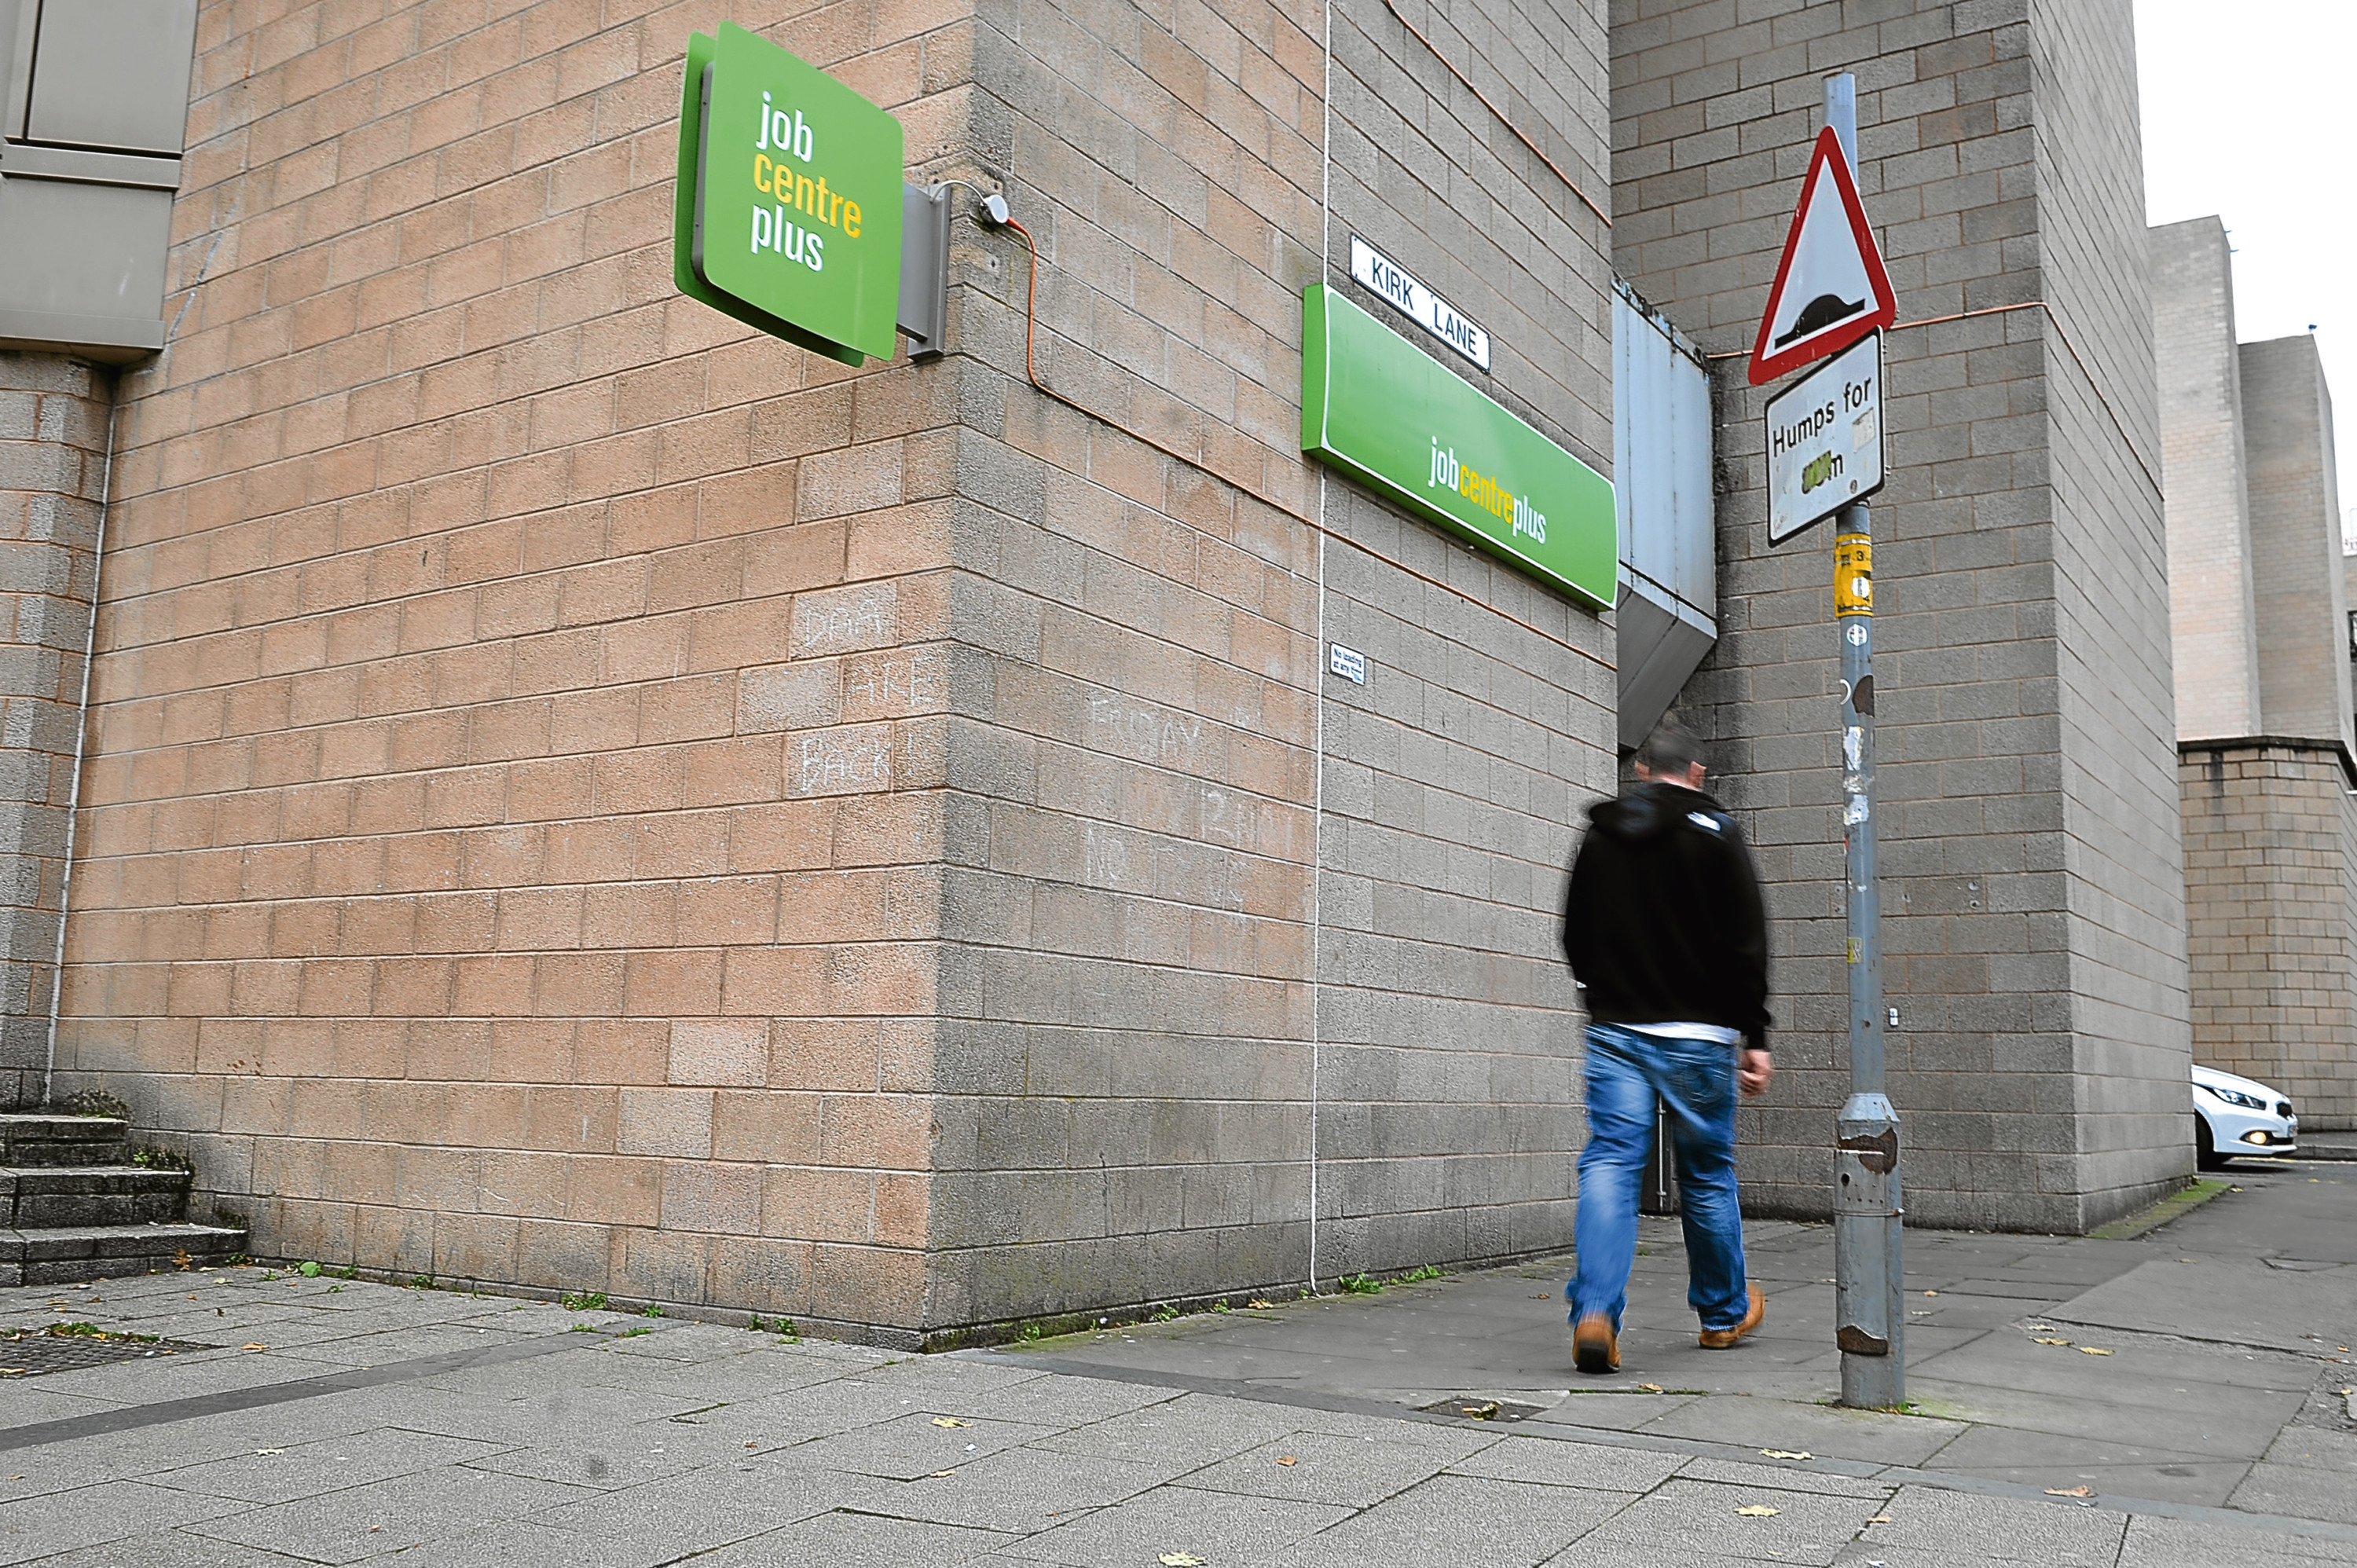 Dundee's Jobcentre Plus at the Wellgate.